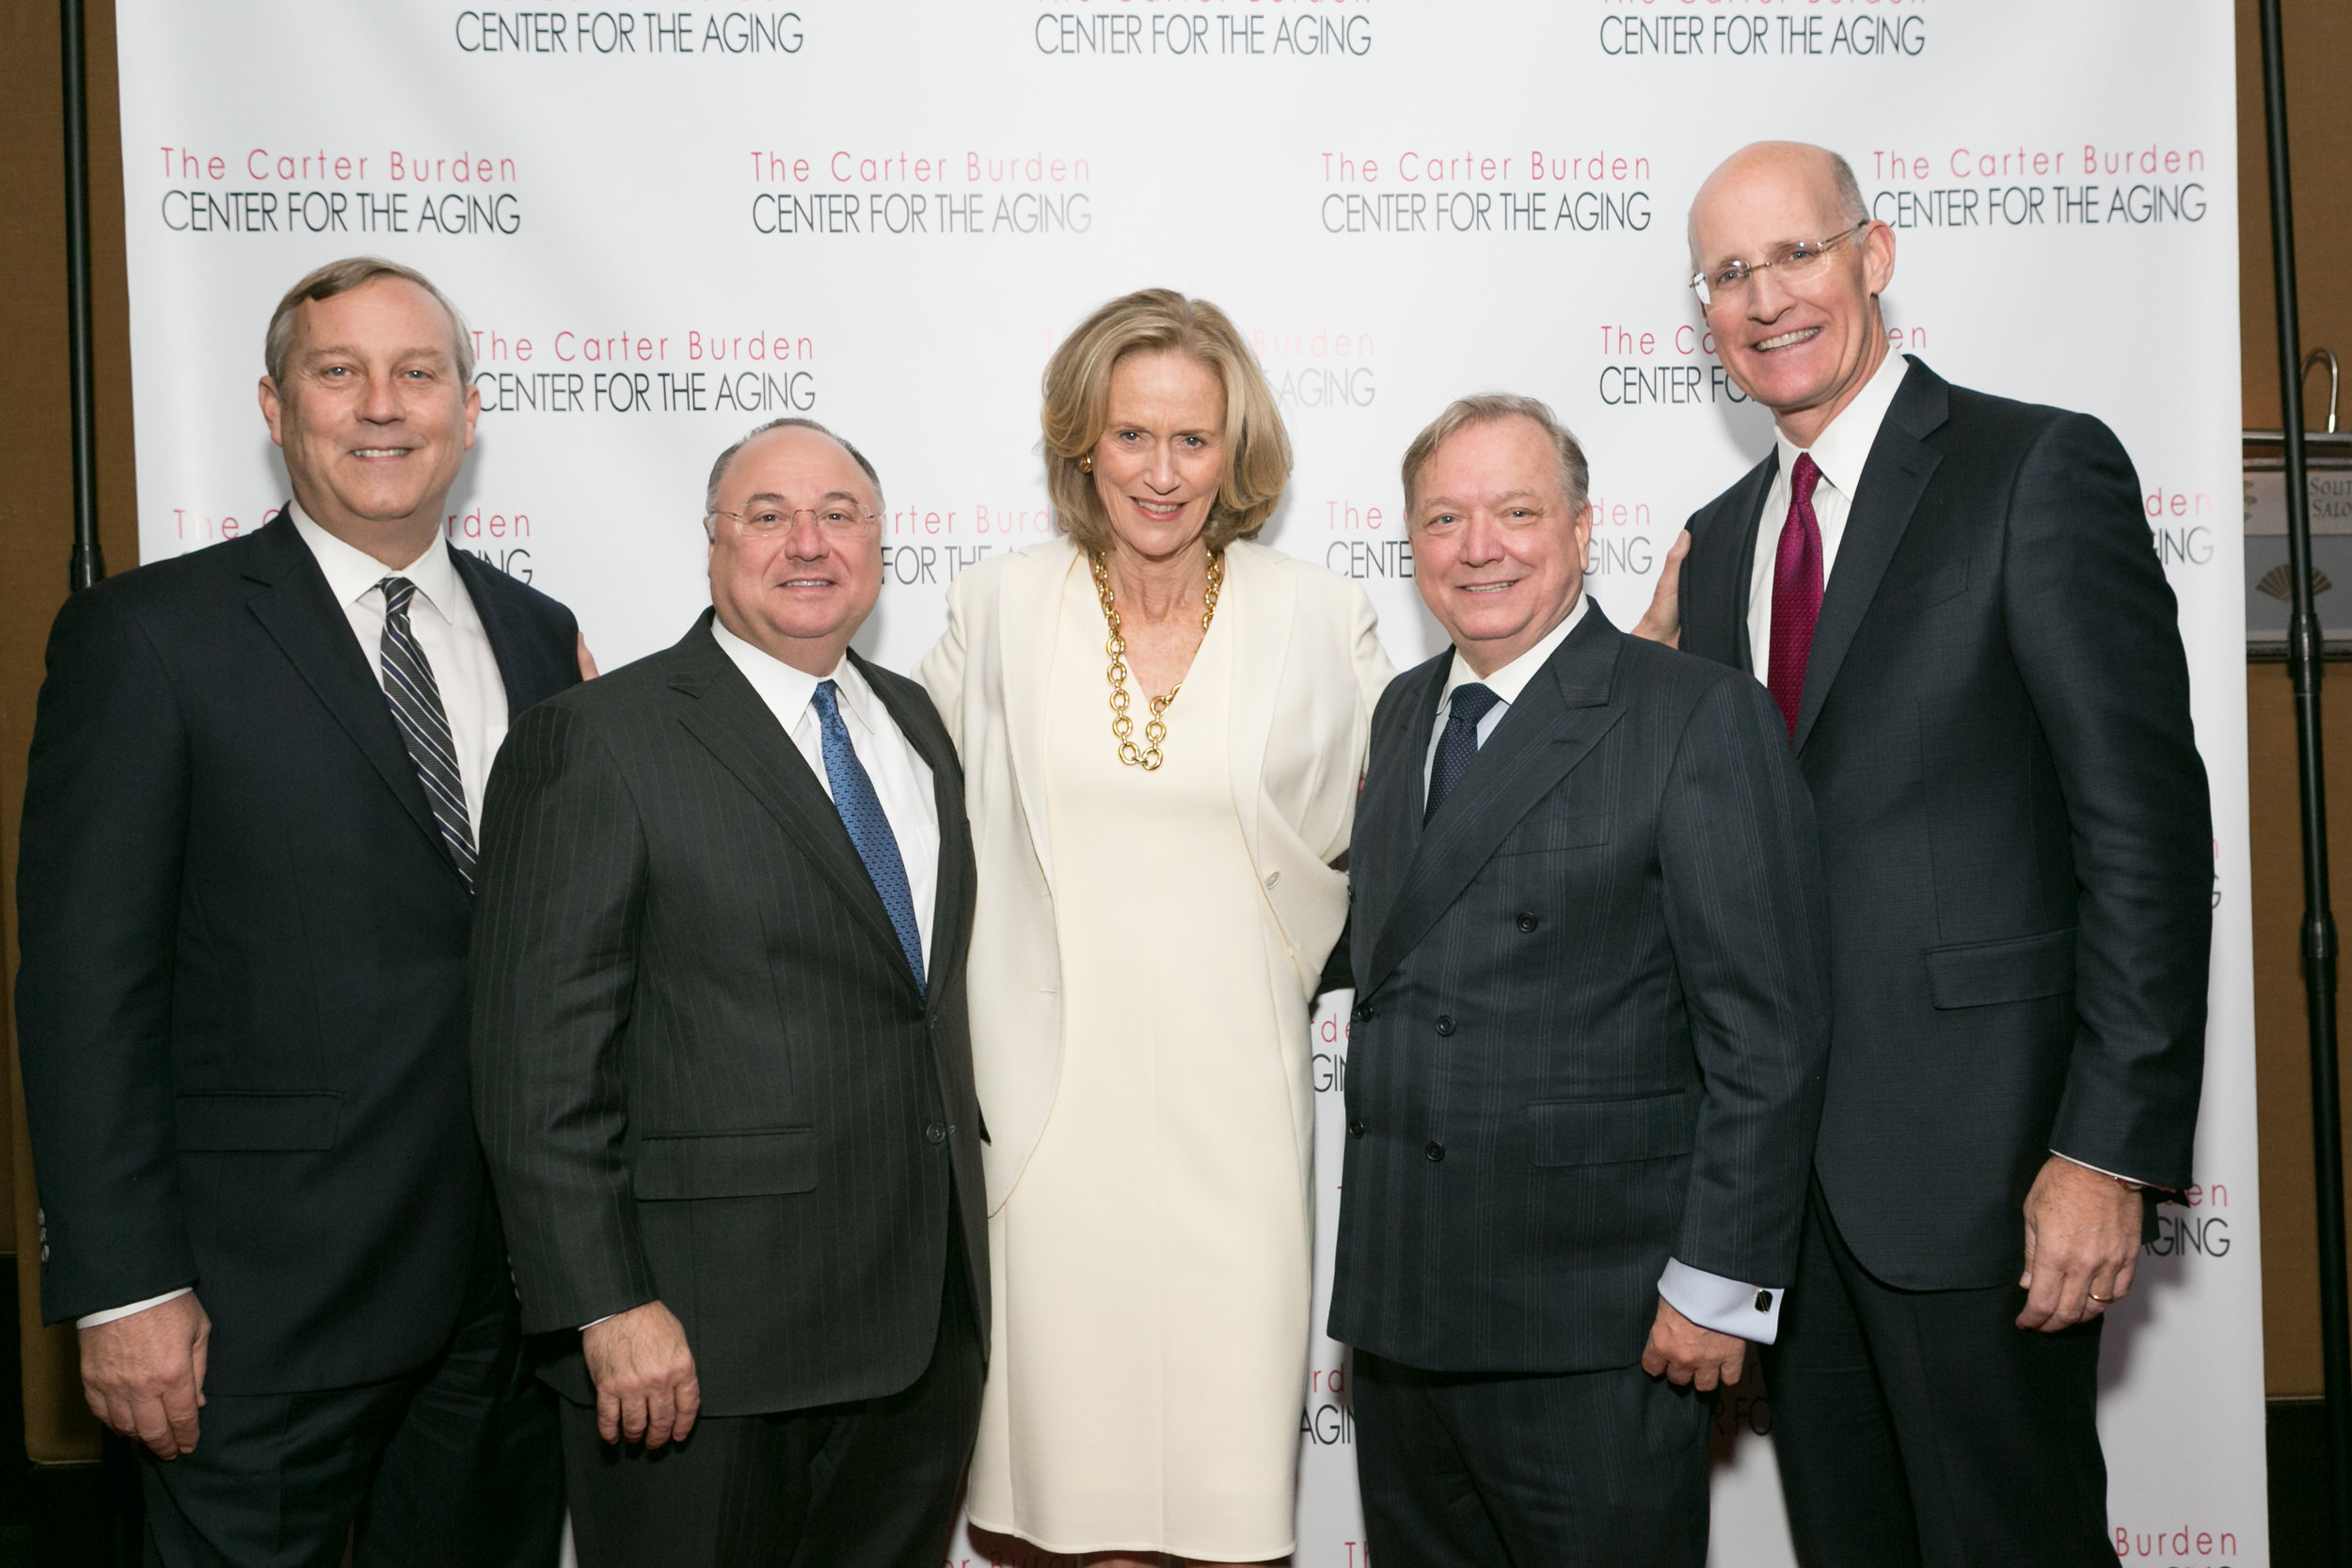 Peter Sachse   , Chief Growth Officer, Macy's, 2016 Business Leadership Honoree;  Jeffrey A. Weber , Board Chairman, Carter Burden Network;  Susan L. Burden , Board Member, Carter Burden Network;  William J. Dionne , Executive Director, Carter Burden Network;  Andy Sieg , Head of Global Wealth & Retirement Solutions, Bank of America Merrill Lynch, 2016 Humanitarian Honoree